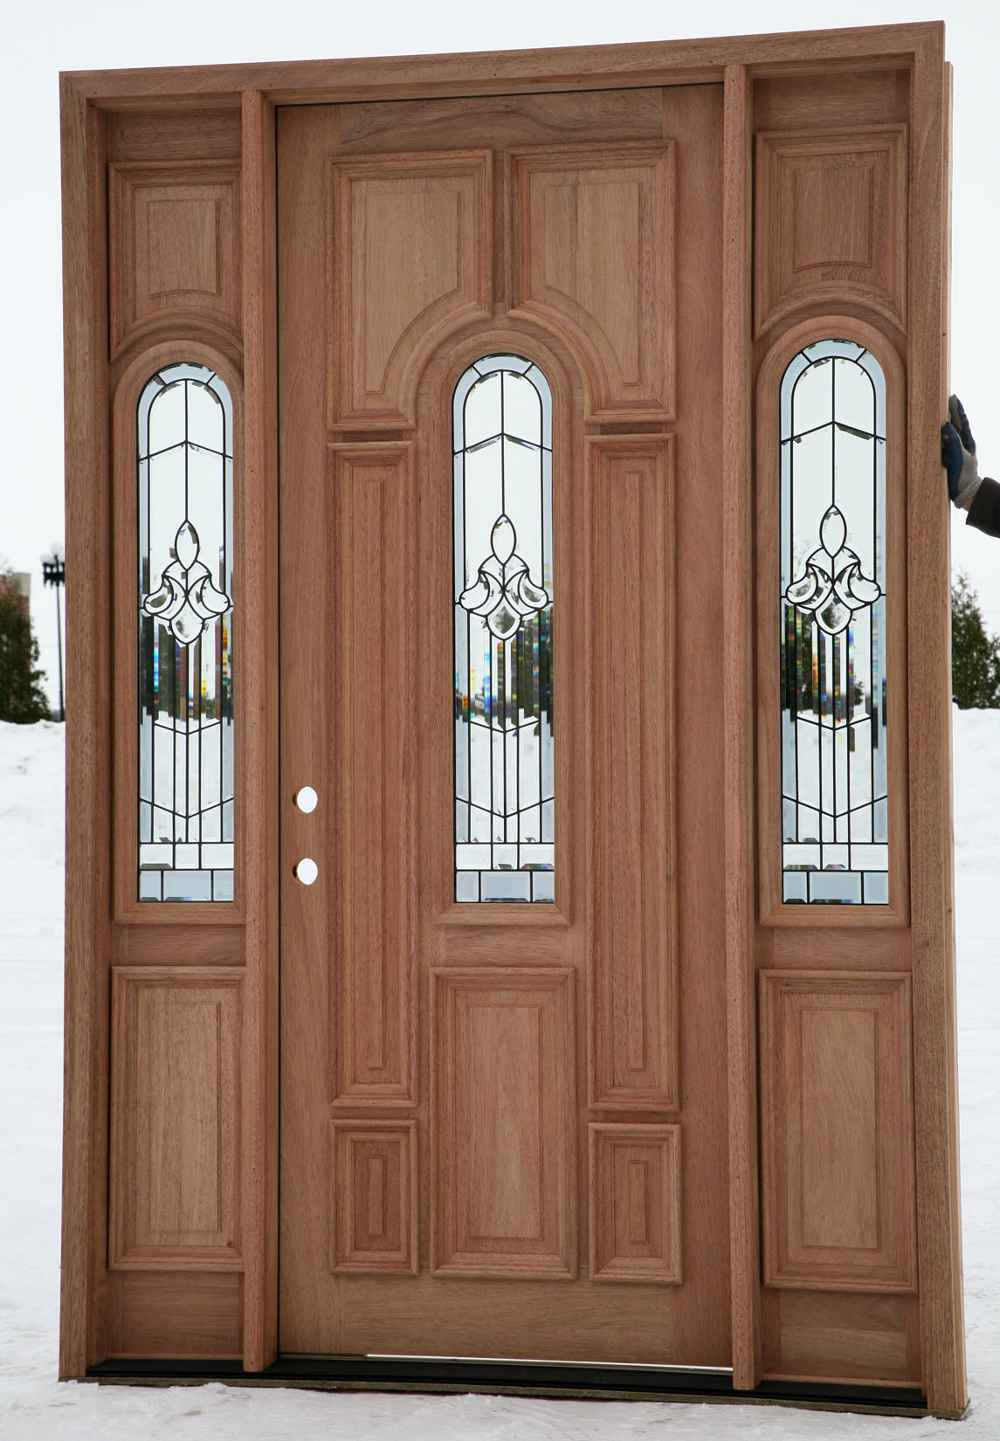 Cheap exterior doors feel the home for Affordable exterior doors